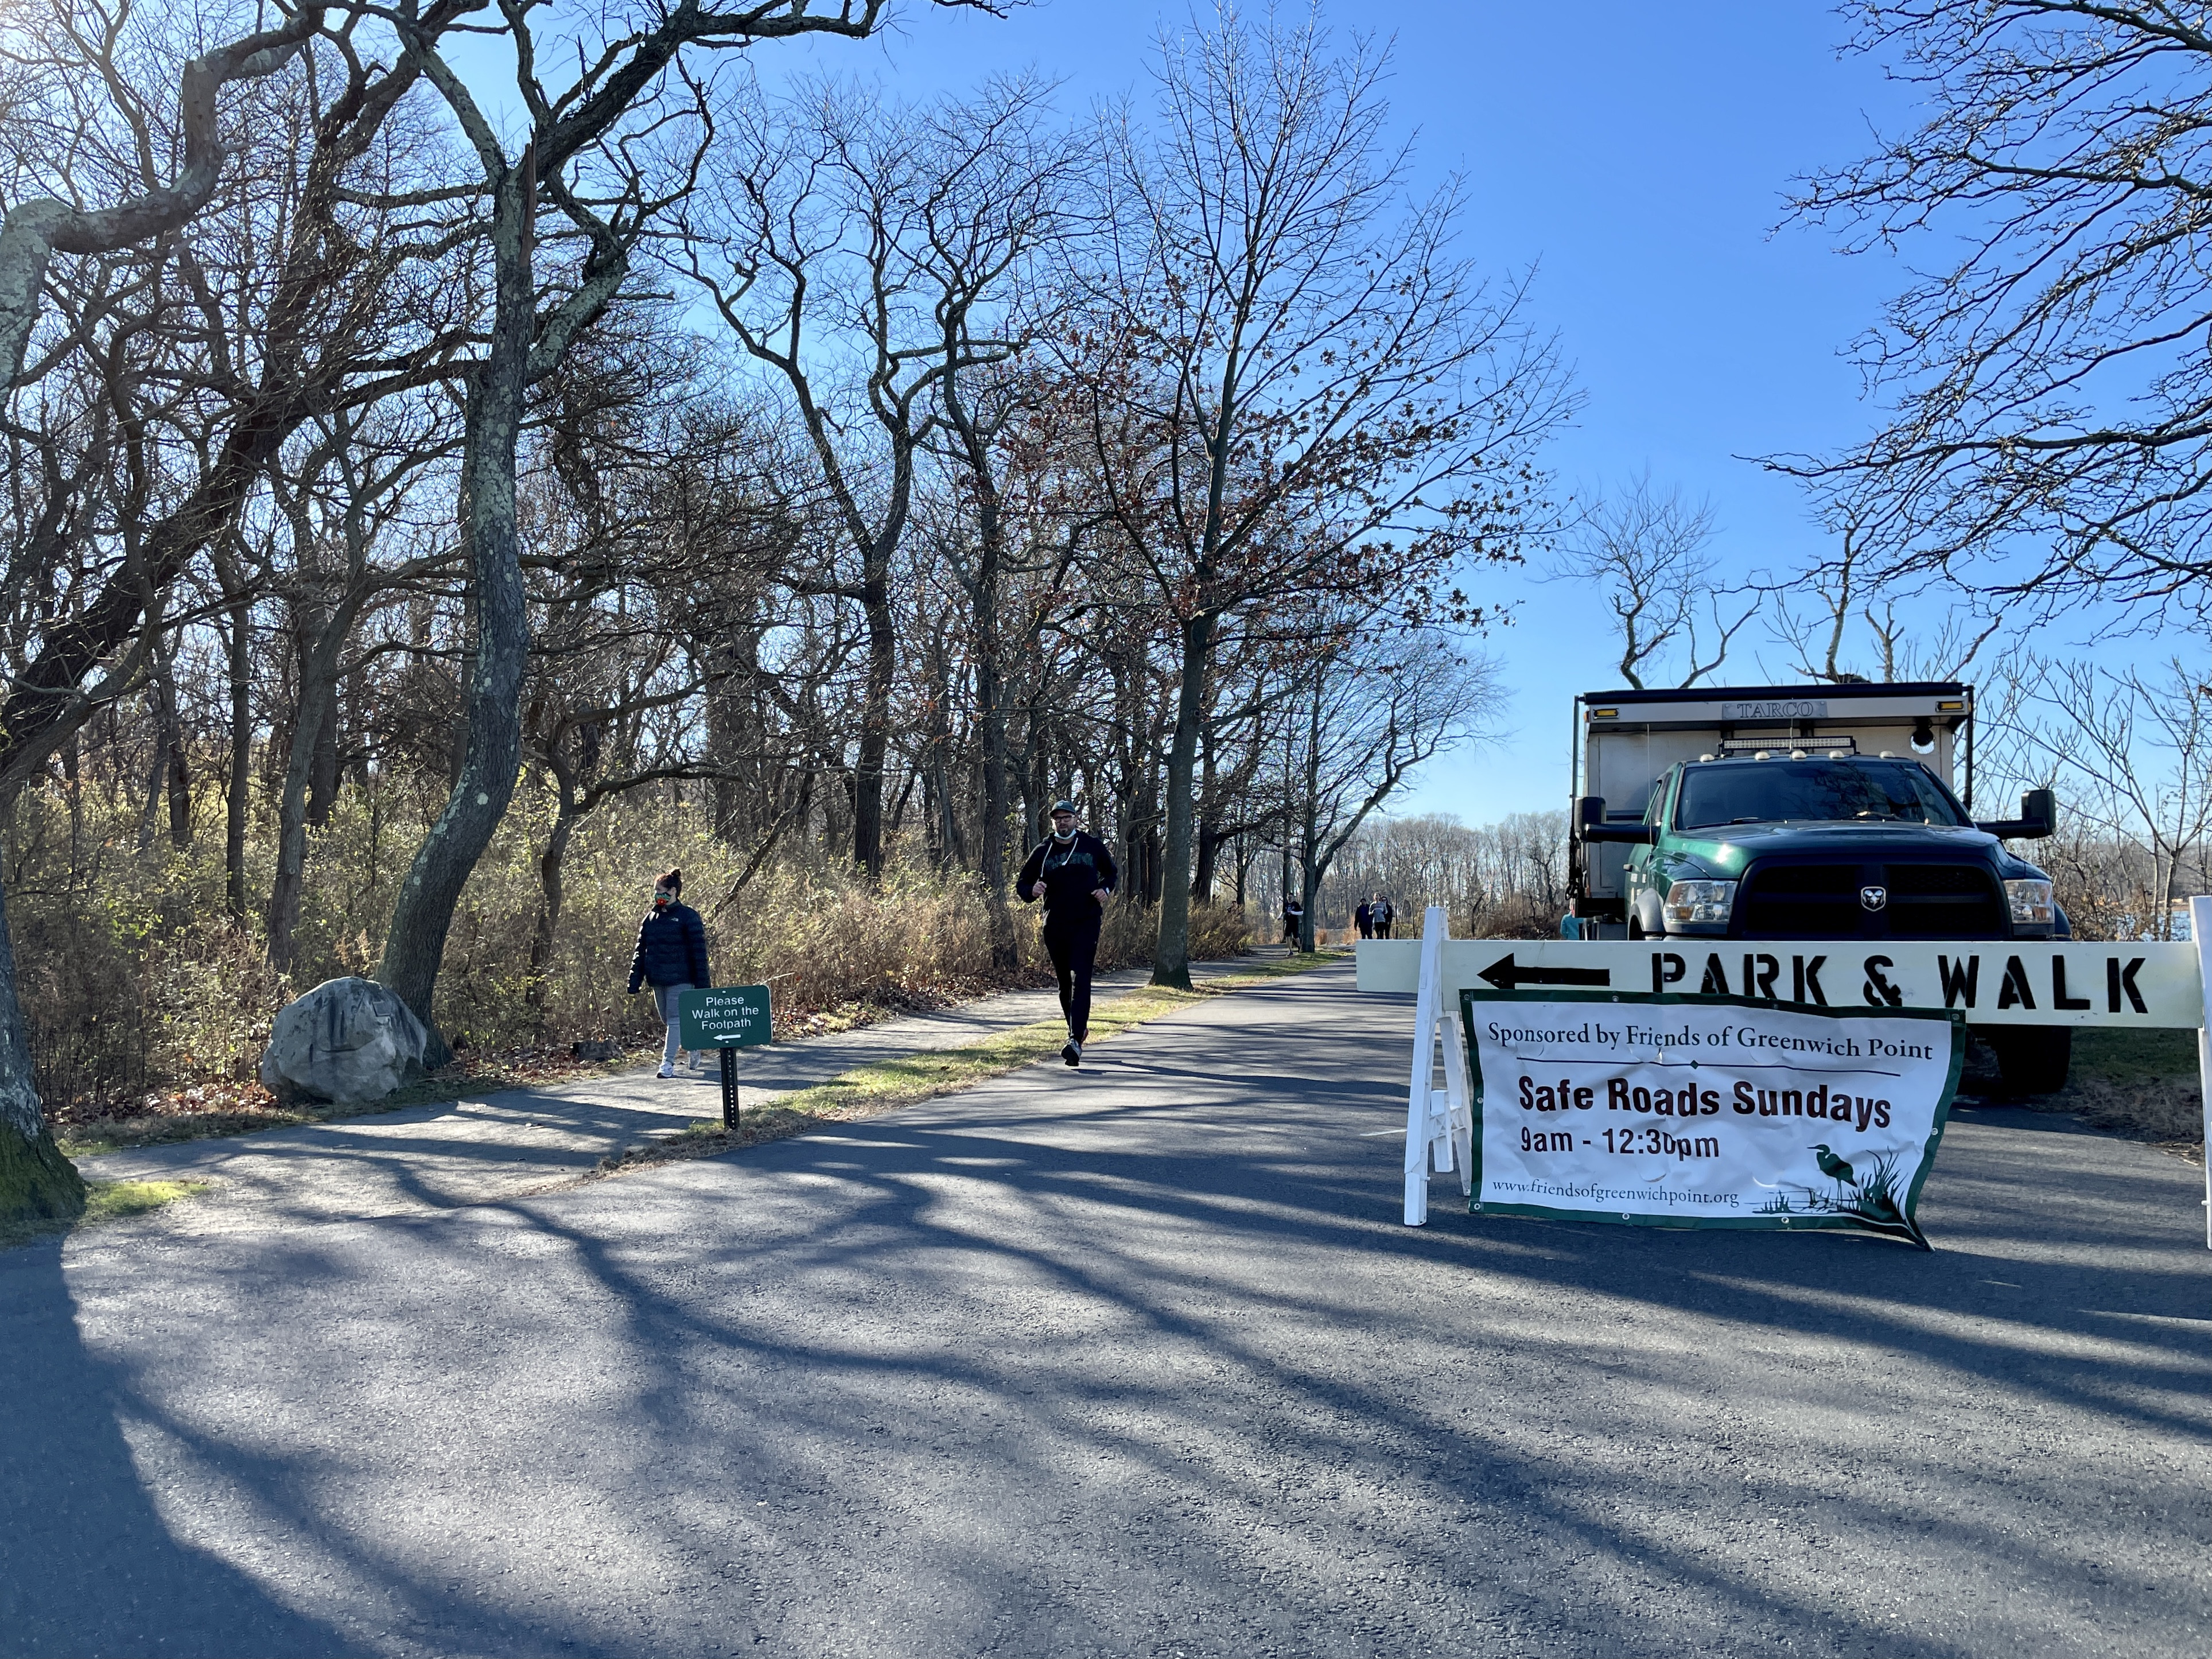 Safe Roads Sunday by Friends of Greenwich Point